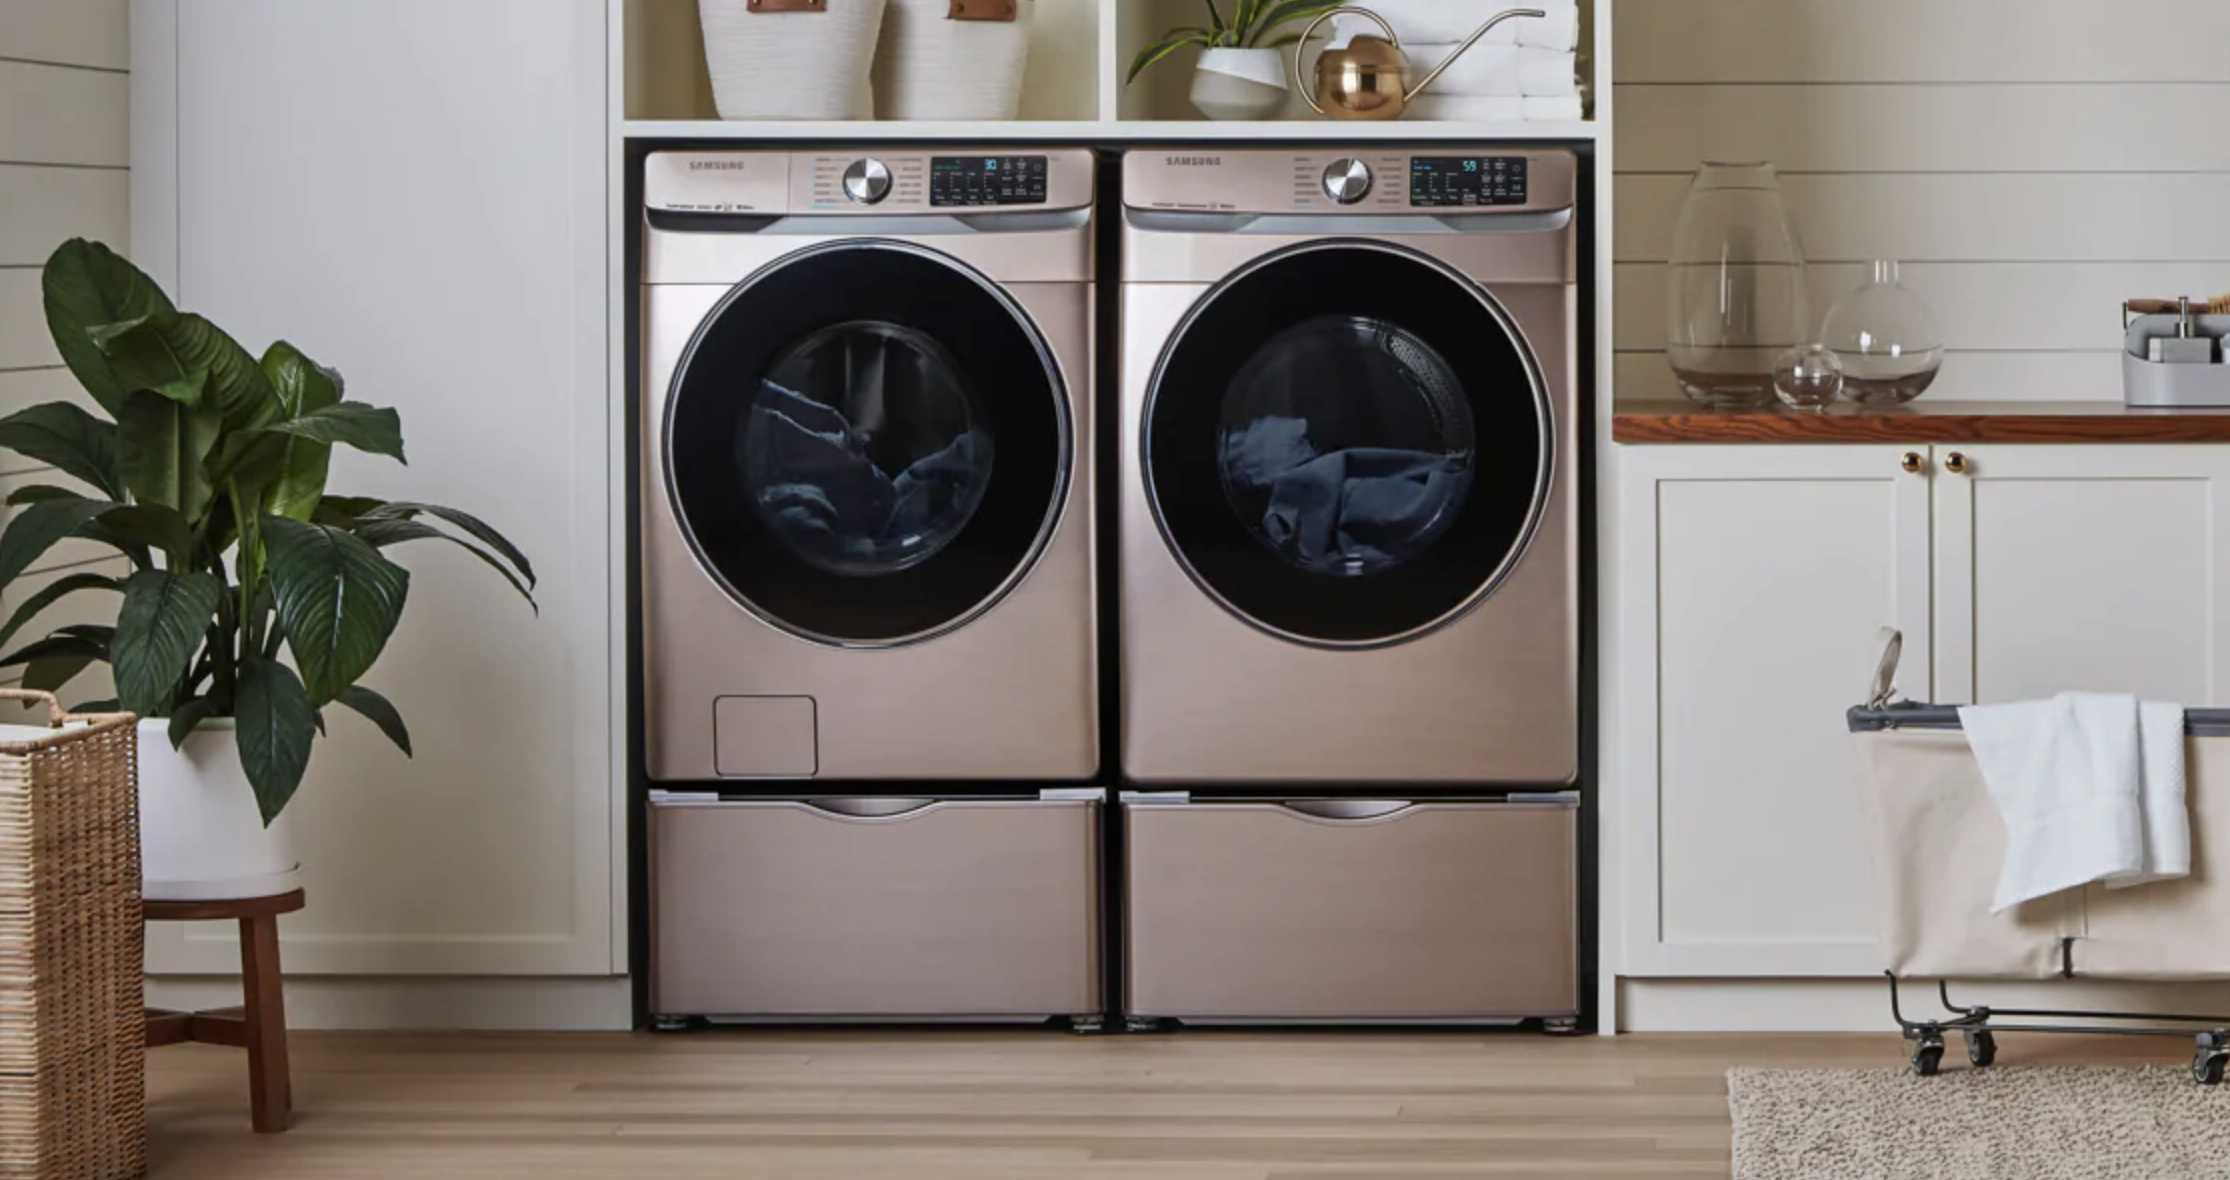 Champagne Washer Dryer Laundry Room Samsung Washer Laundry